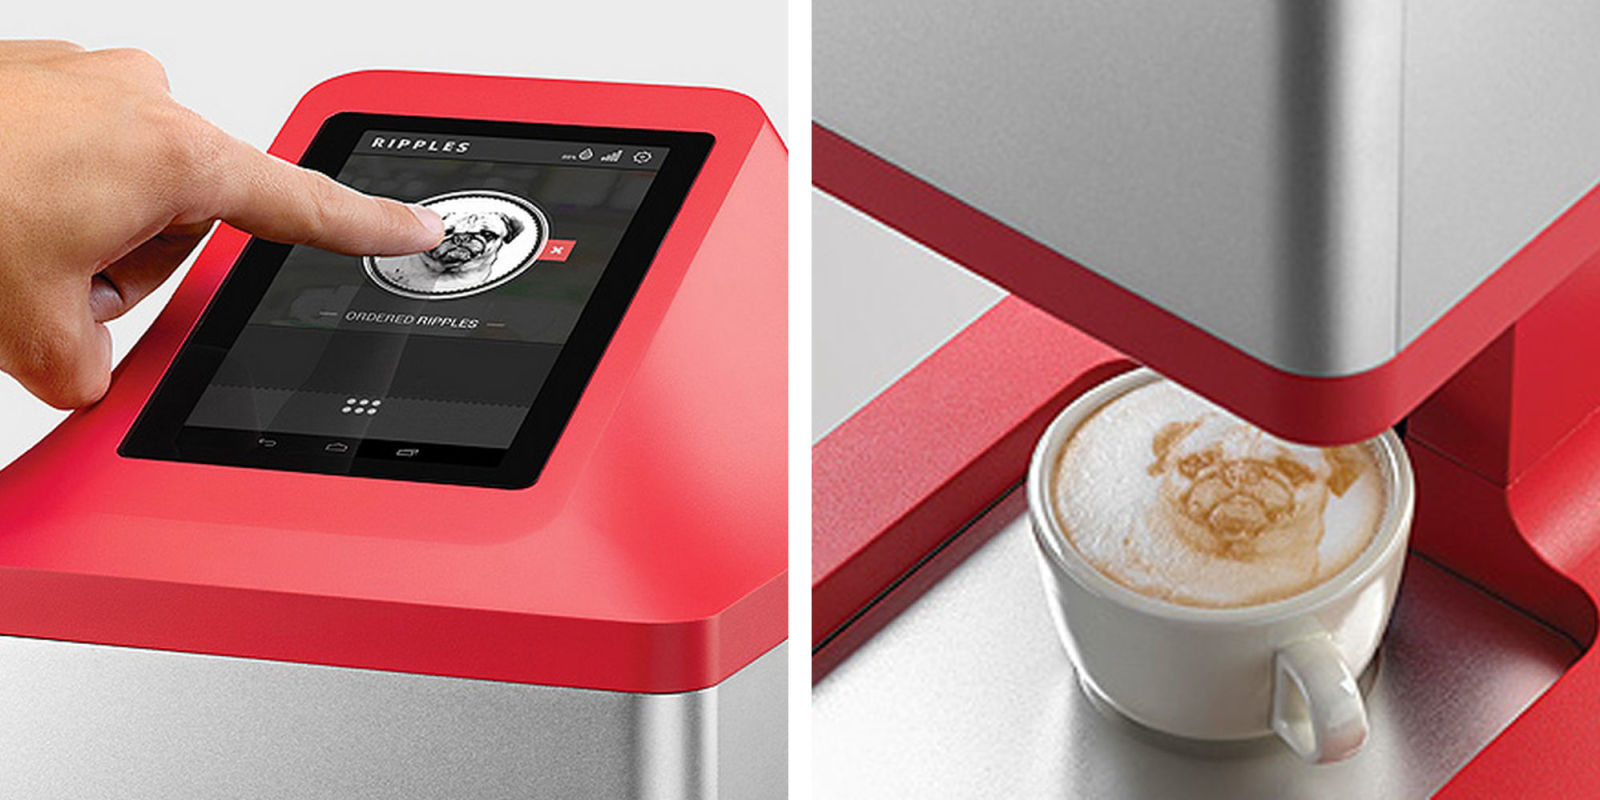 Soon You Can Buy A Machine That Turns All Your Selfies